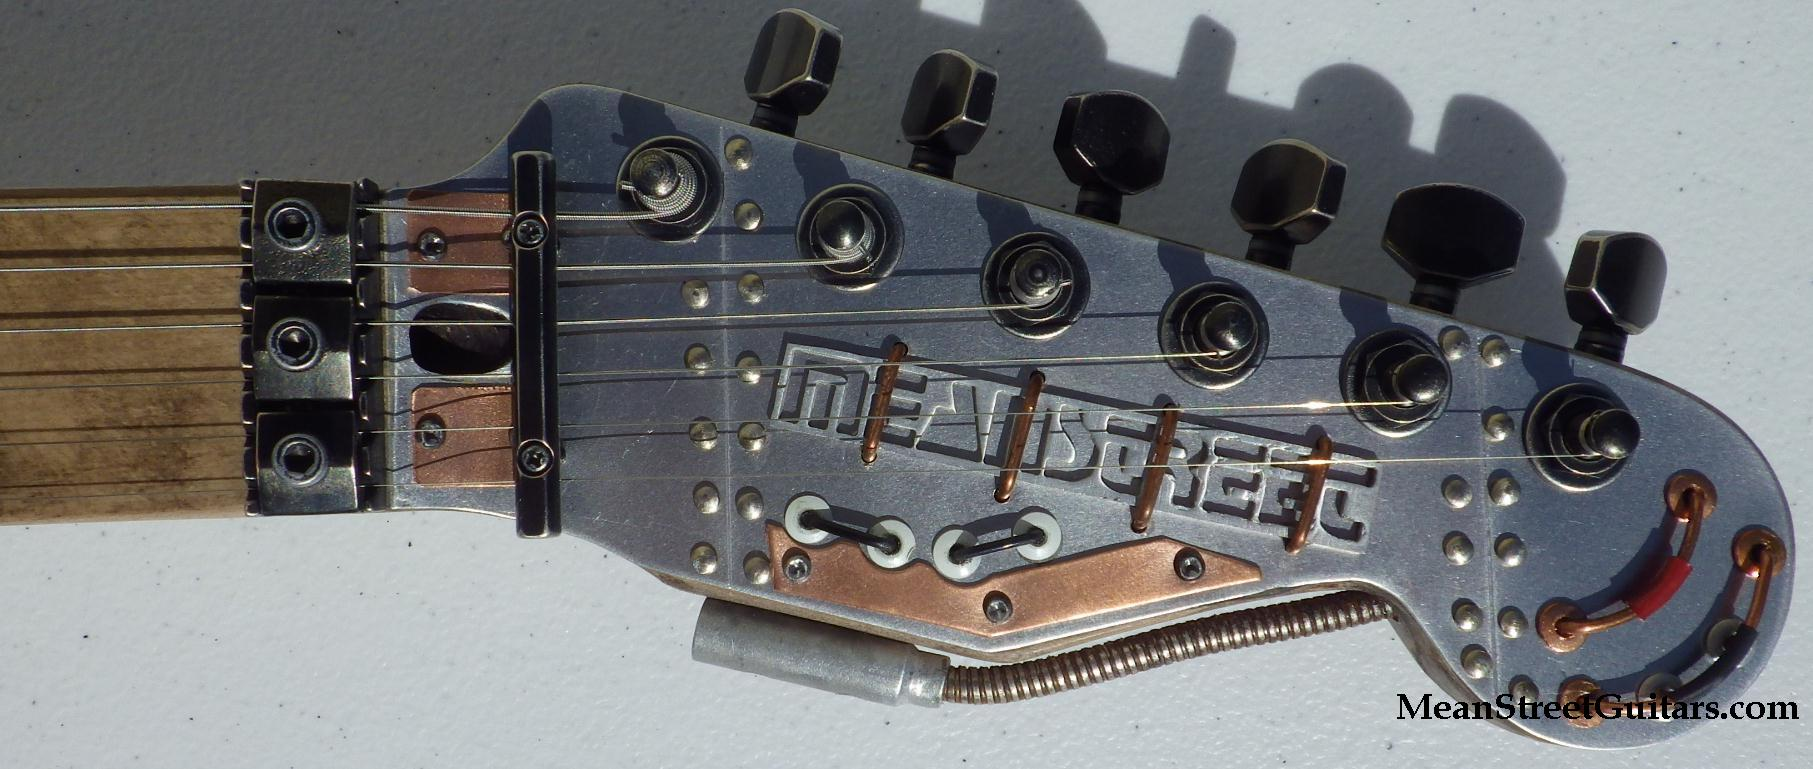 Mean Street Guitars Industrial Compensator pic 8.jpg